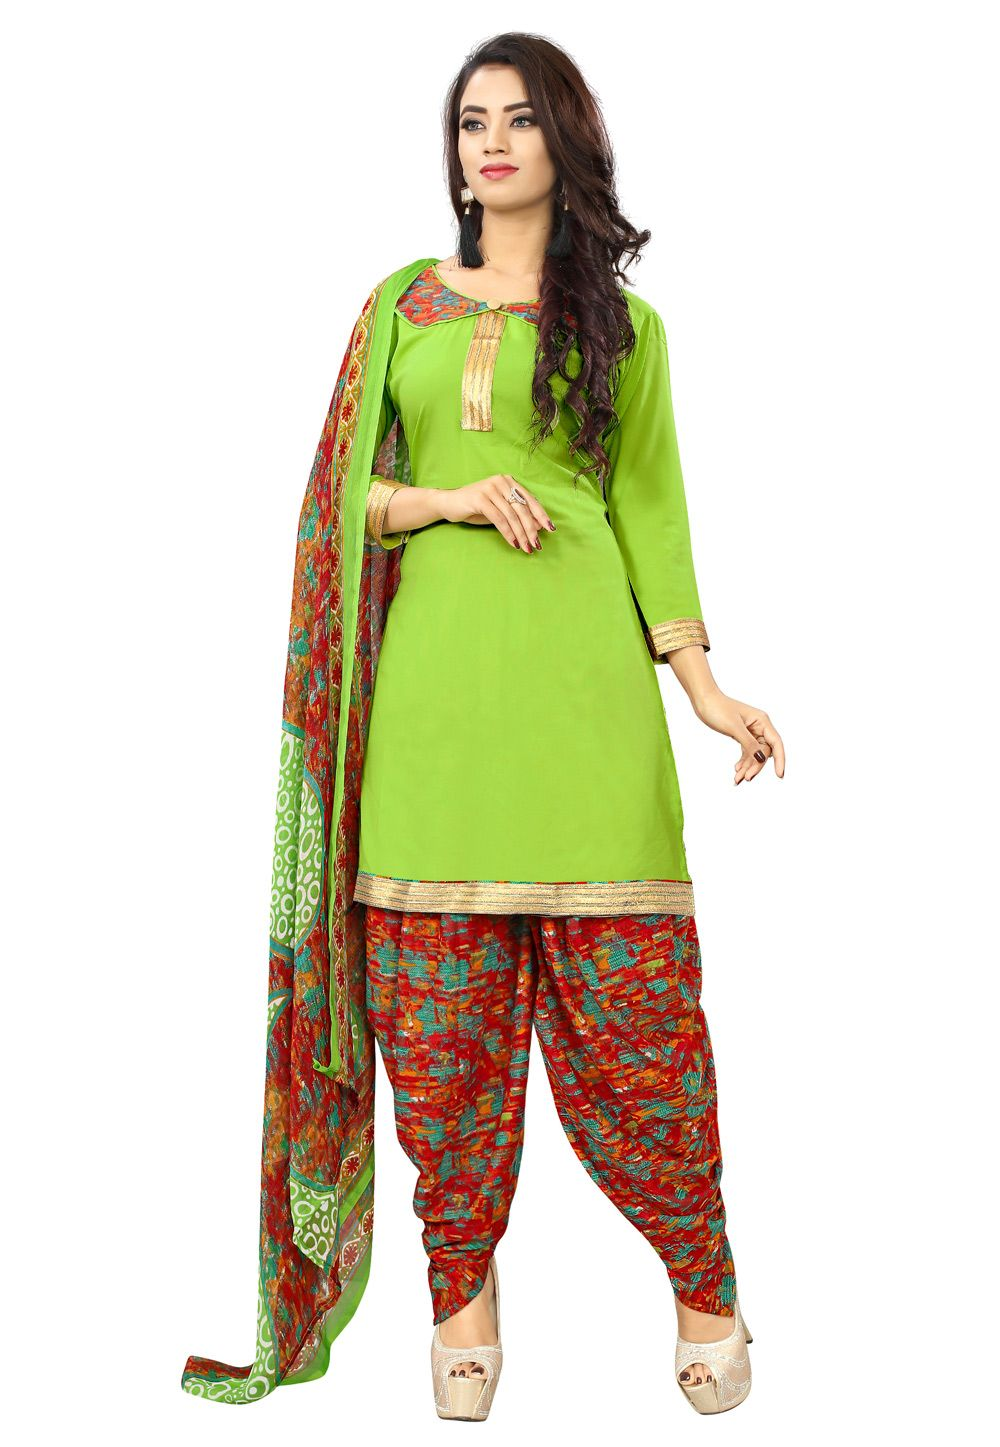 a55b175bfe Buy Light Green Cotton Patiala Suit 155442 online at lowest price from huge  collection of salwar kameez at Indianclothstore.com.